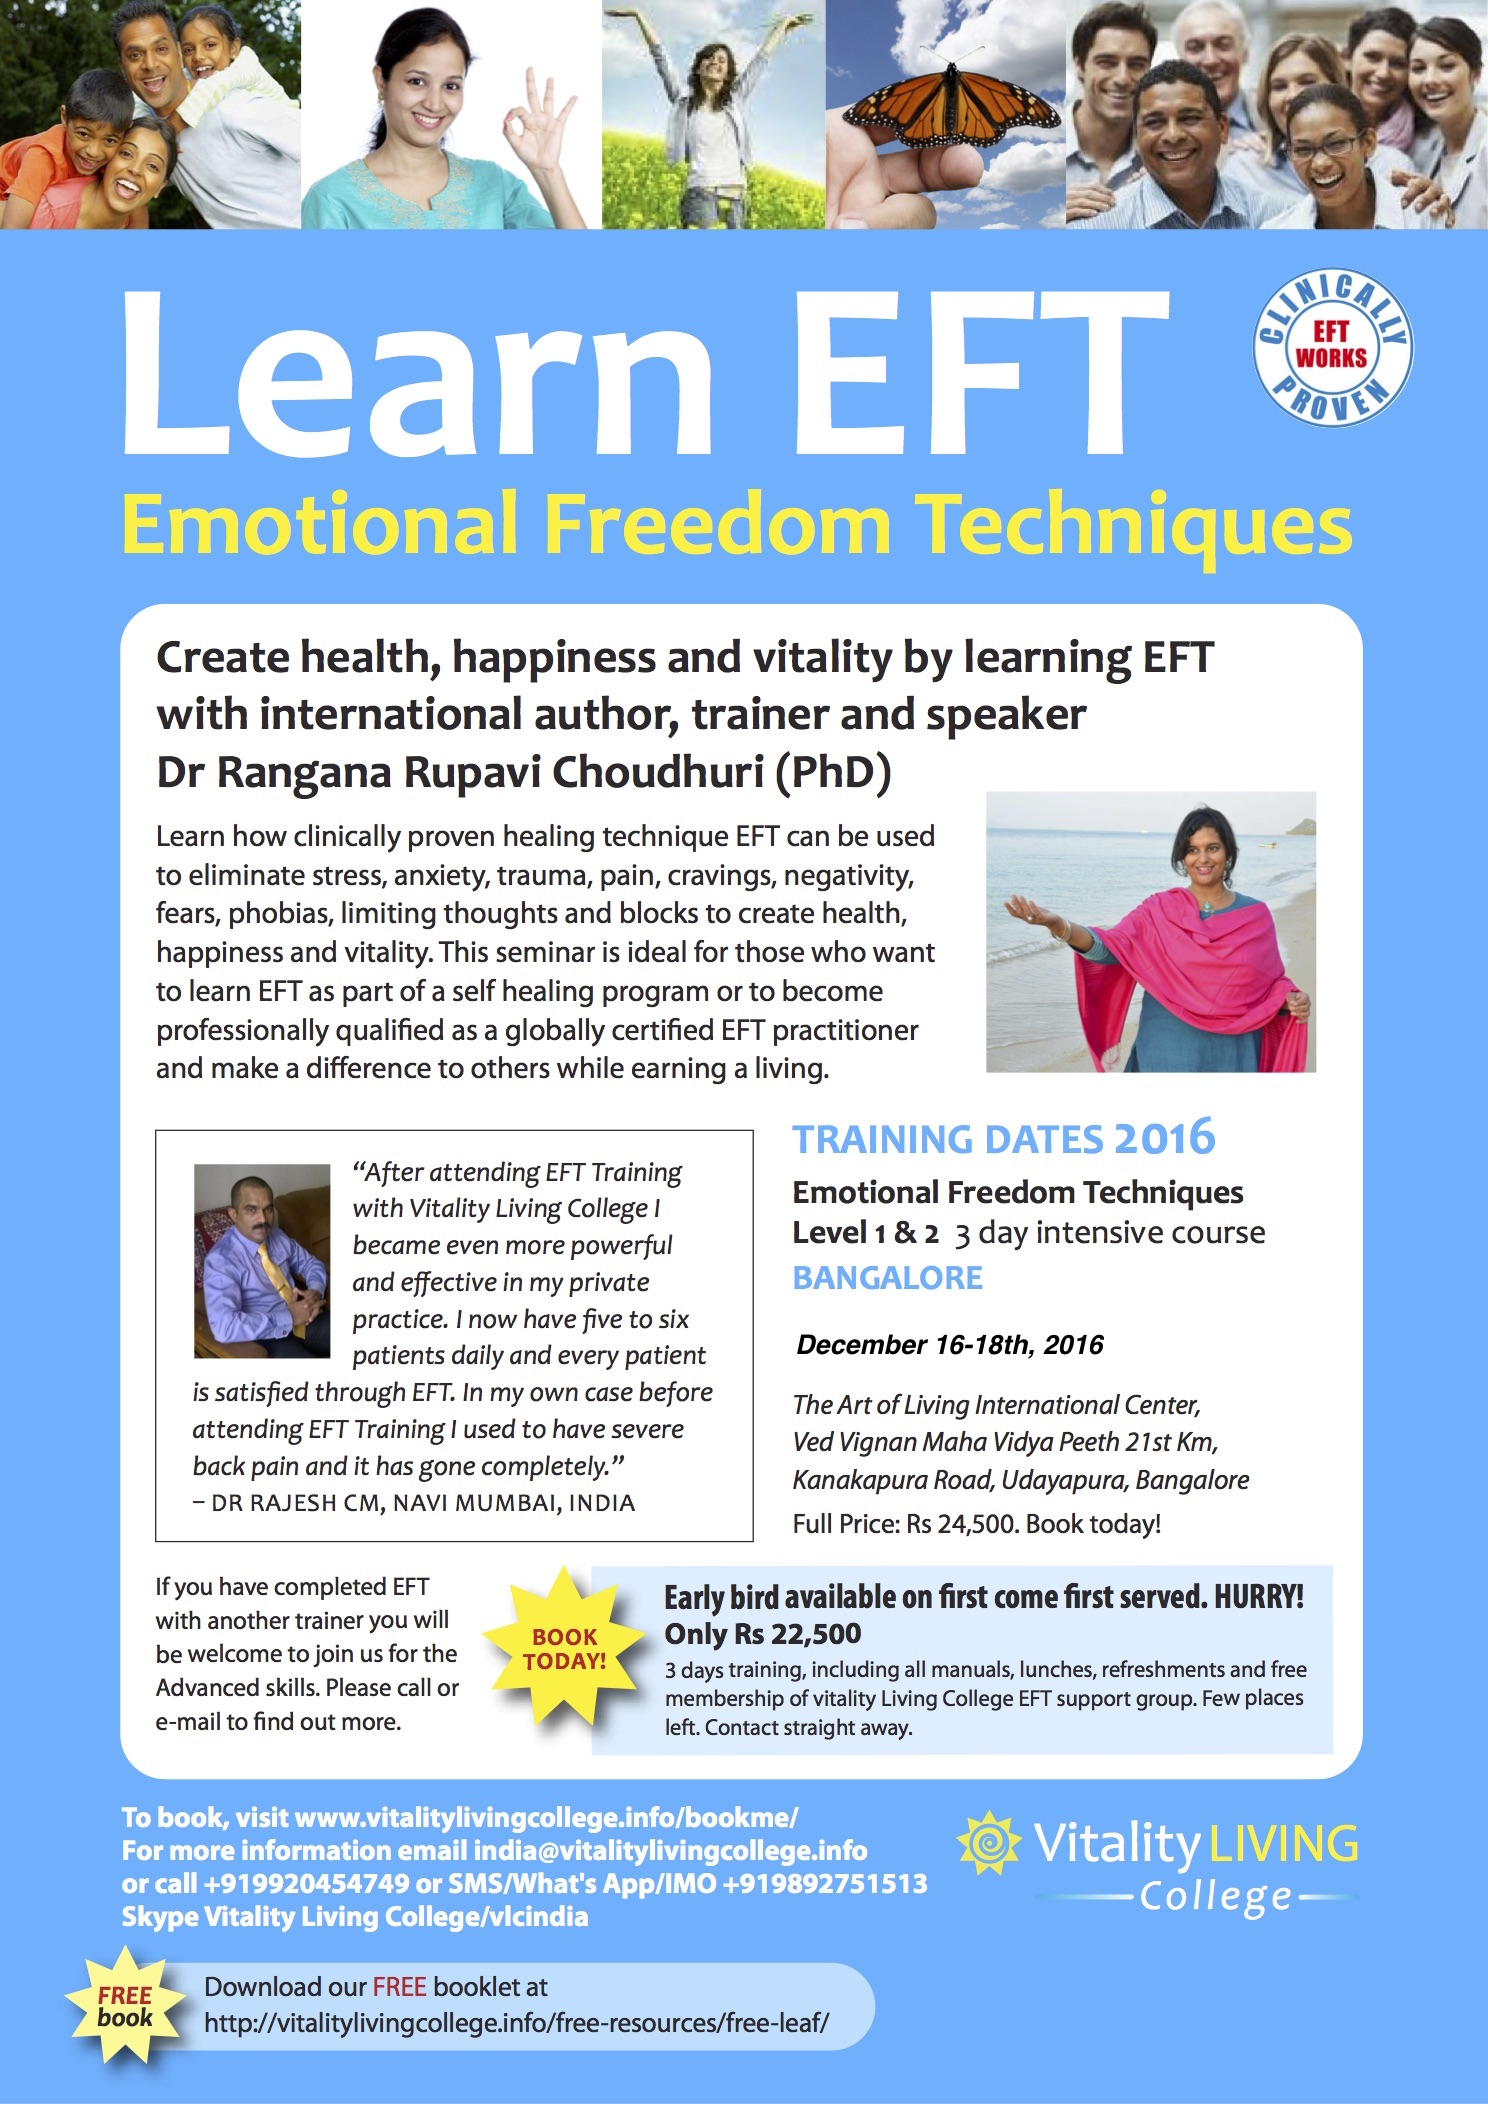 Emotional Freedom Techniques (EFT) Bangalore December 2016 with Dr Rangana Rupavi Choudhuri